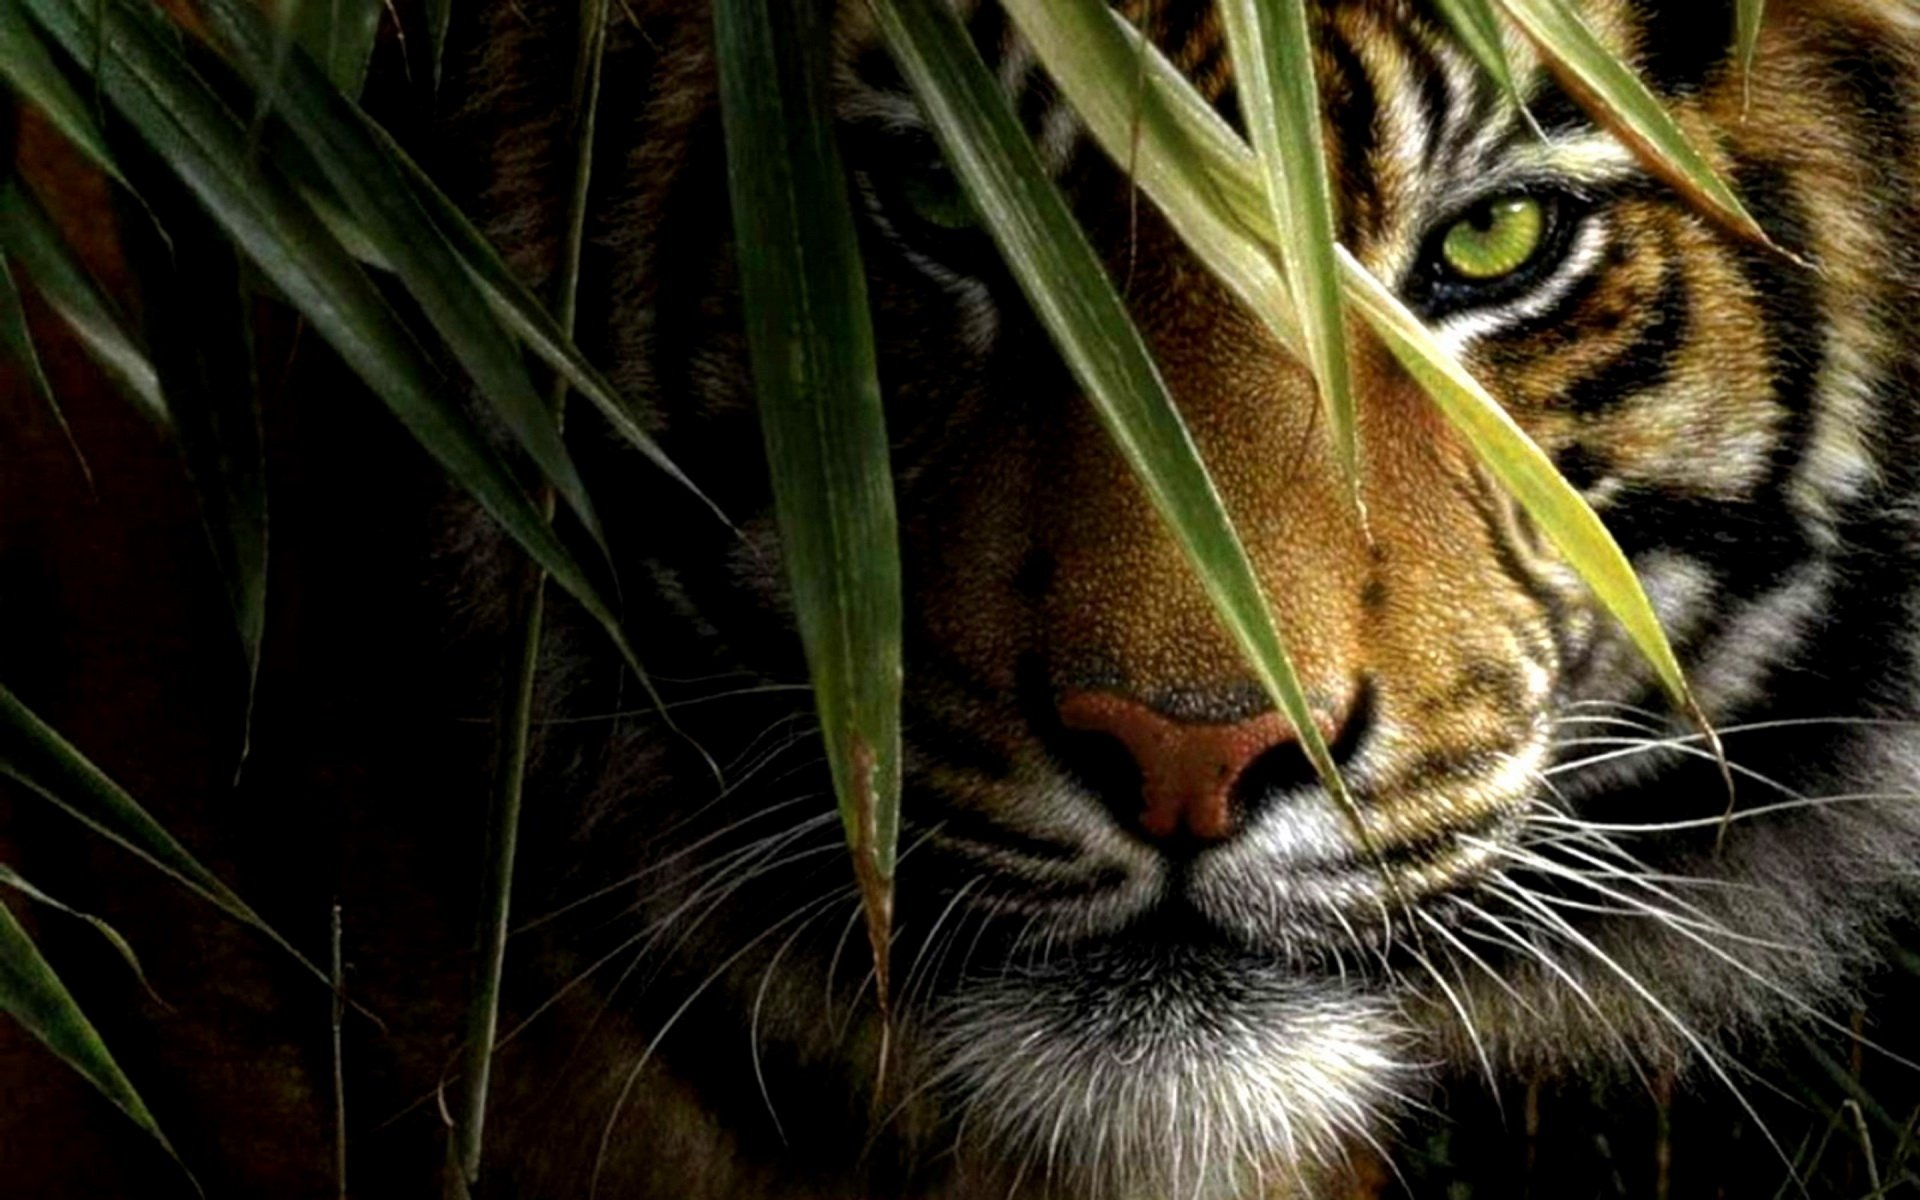 Tiger Hd Wallpaper Background Image 1920x1200 Id 380998